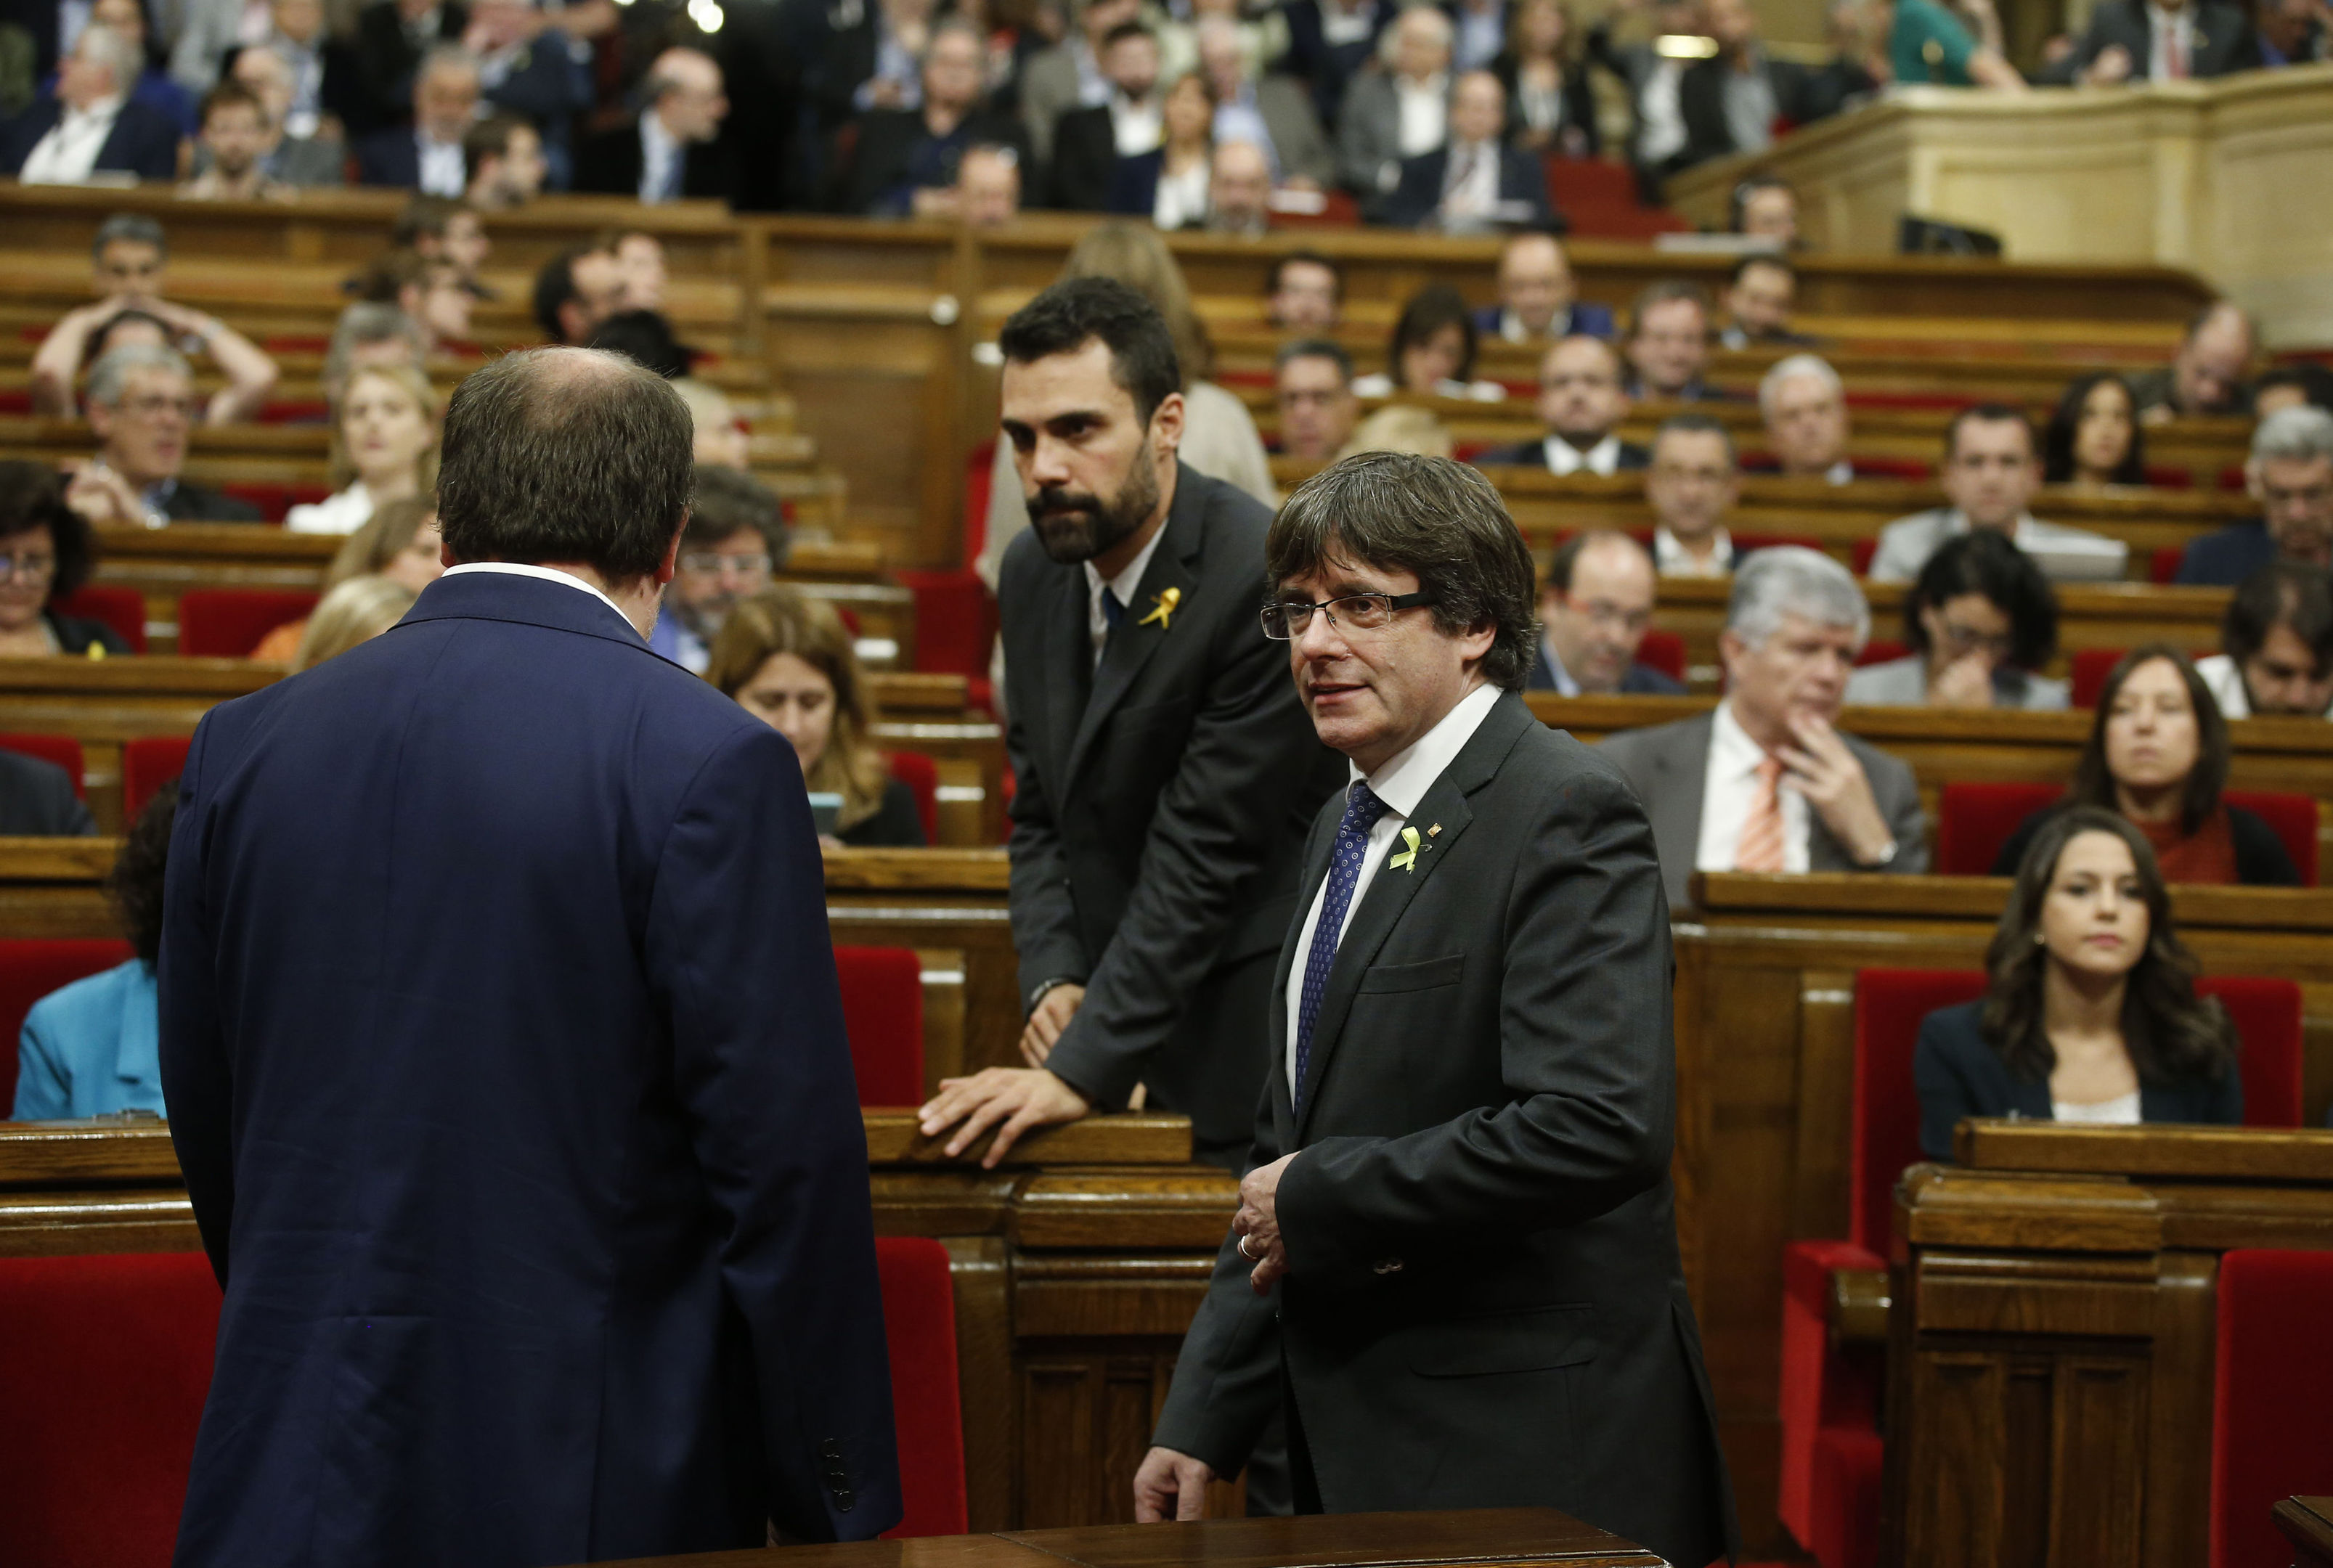 Catalan President Carles Puigdemont, right, during a session inside the Catalan parliament (AP Photo/Manu Fernandez)